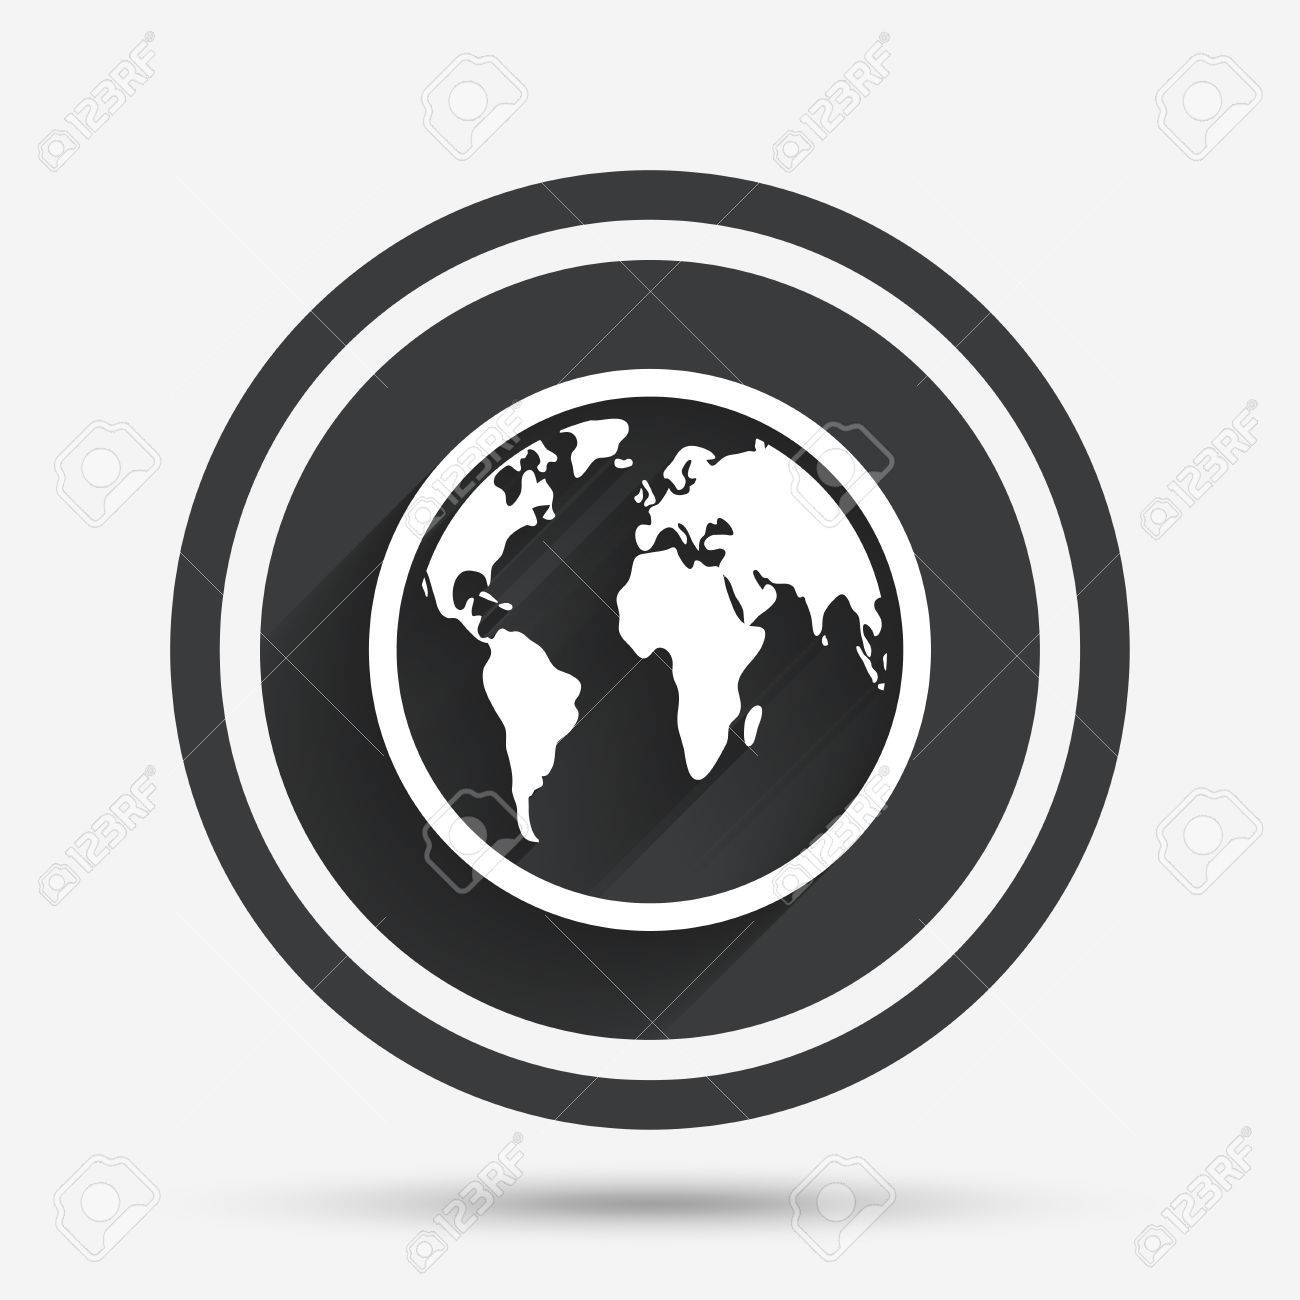 Globe sign icon world map geography symbol circle flat button world map geography symbol circle flat button with shadow and border gumiabroncs Gallery